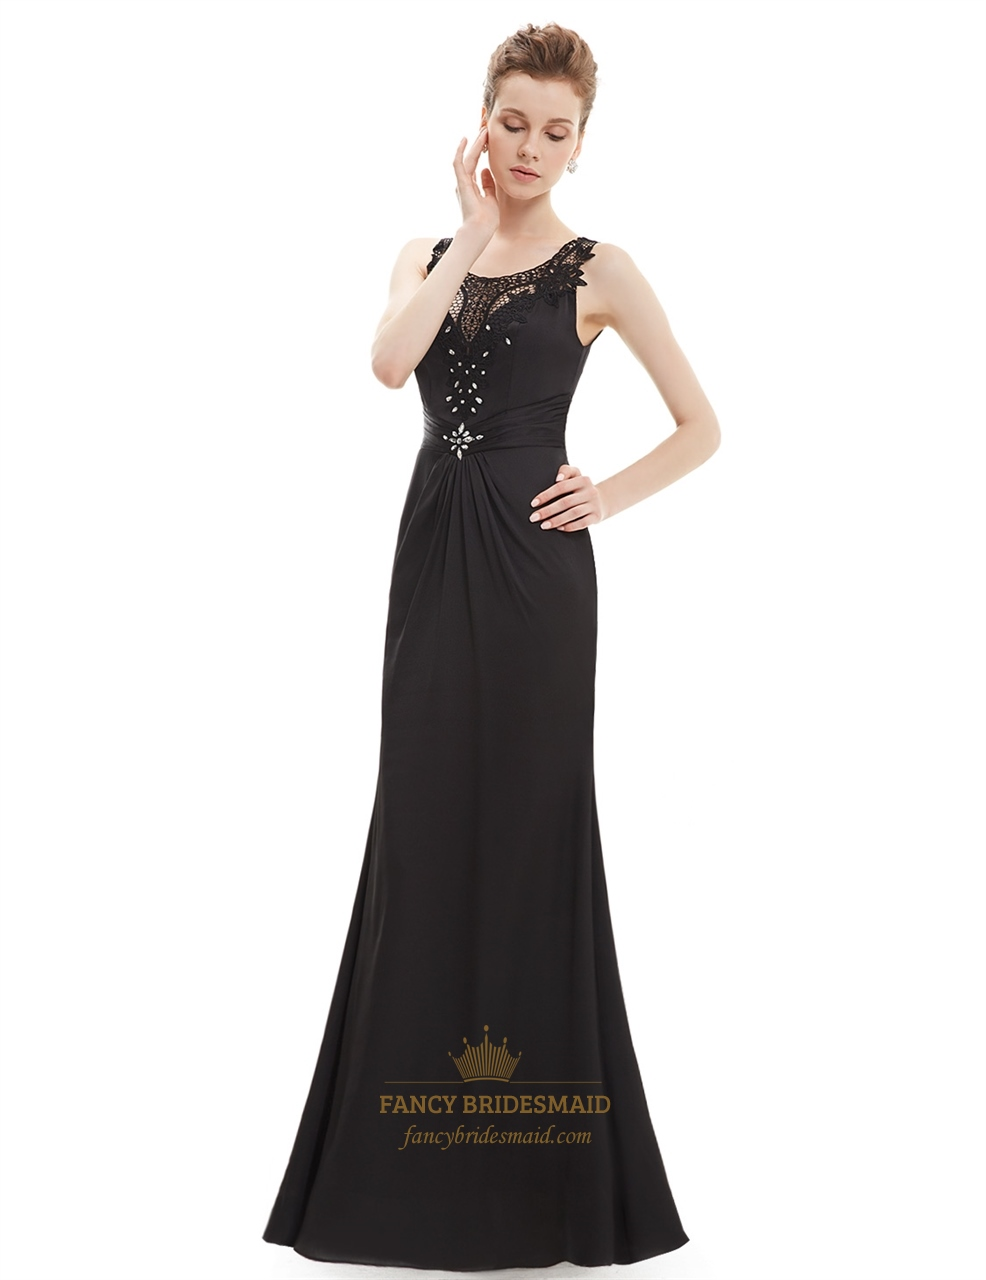 Black Lace Illusion Neckline Sheath Prom Dress With Beaded